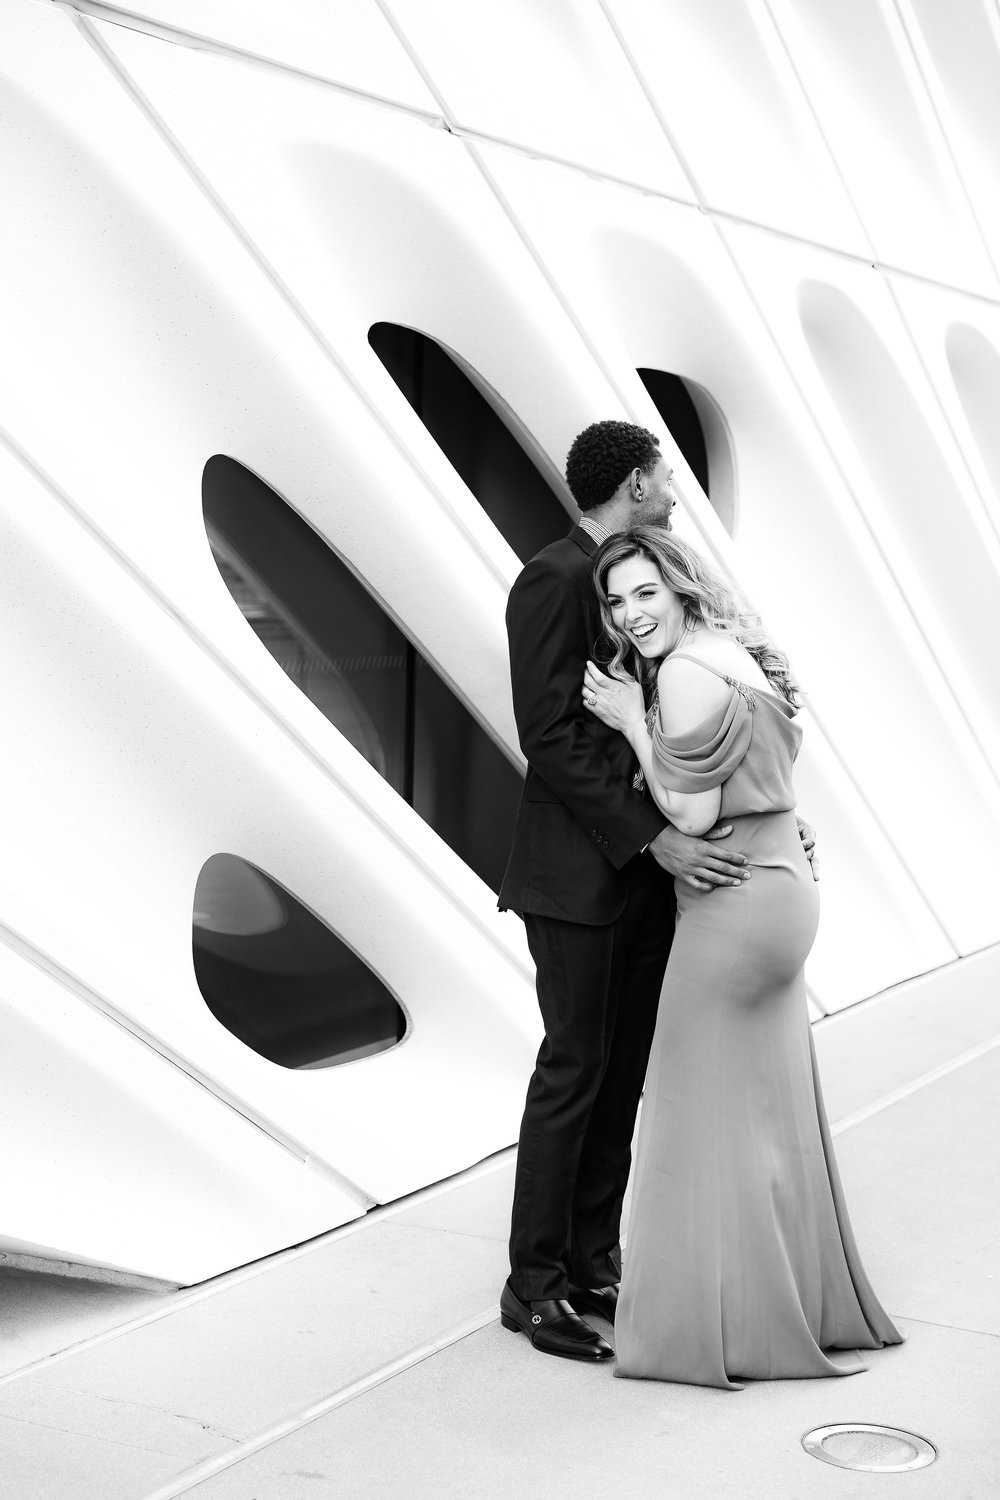 Black and white engagement photos at Disney Concert Hall.Danielle Ghaffari and CJ Watson. Engagement Photos in downtown LA. Luxury Wedding Planner Andrea Eppolito, with images by Brian Leahy.